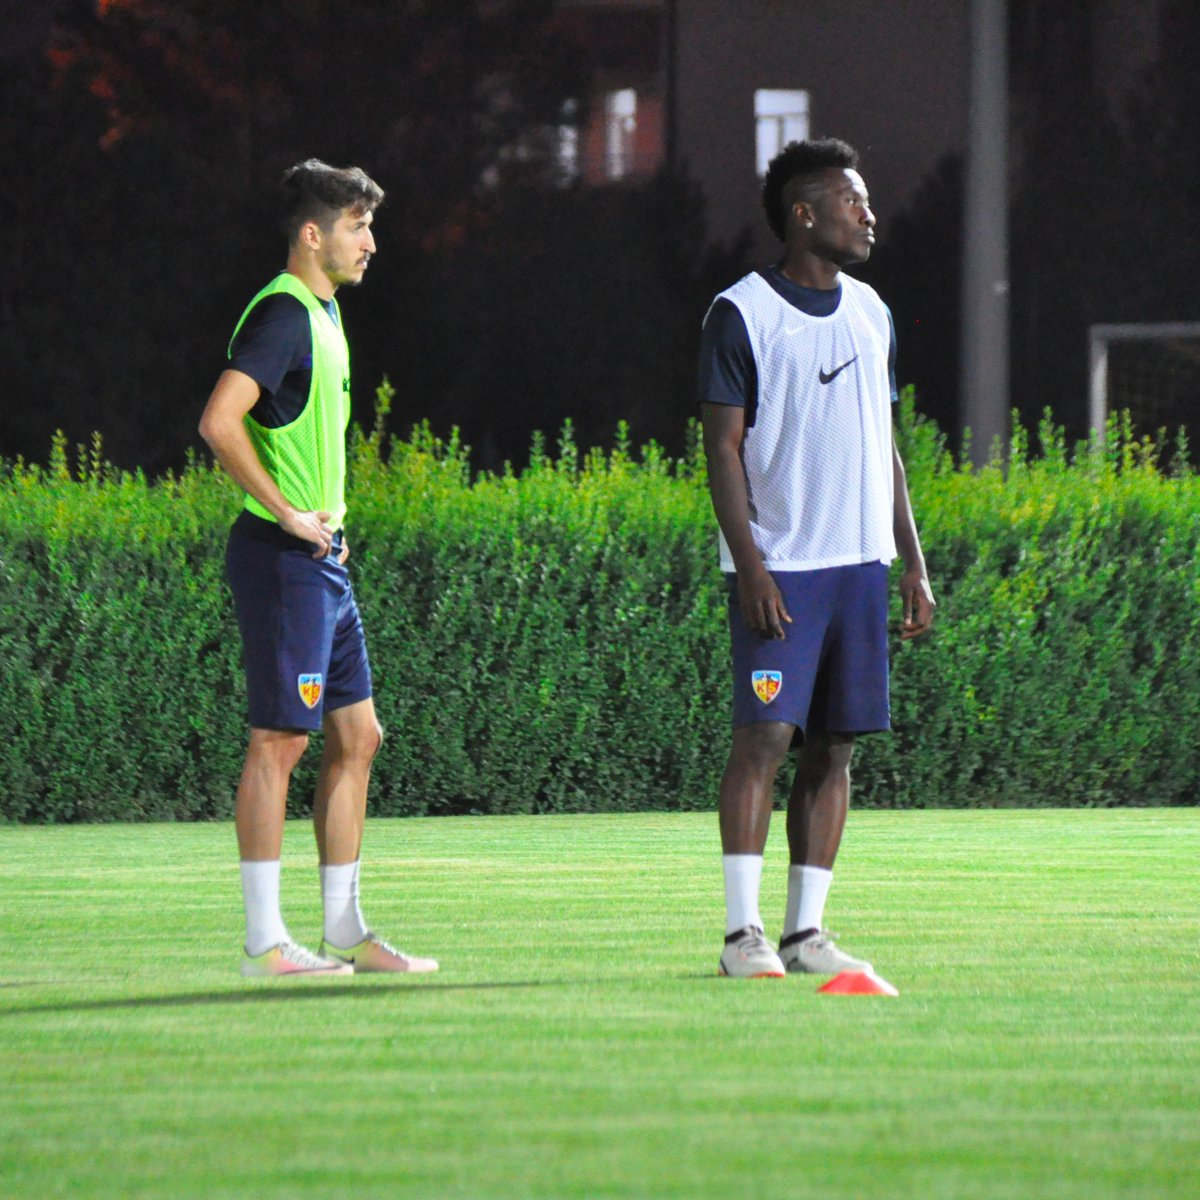 Asamoah Gyan returns to training with Kayeserispor team mates after quick recovery from groin injury